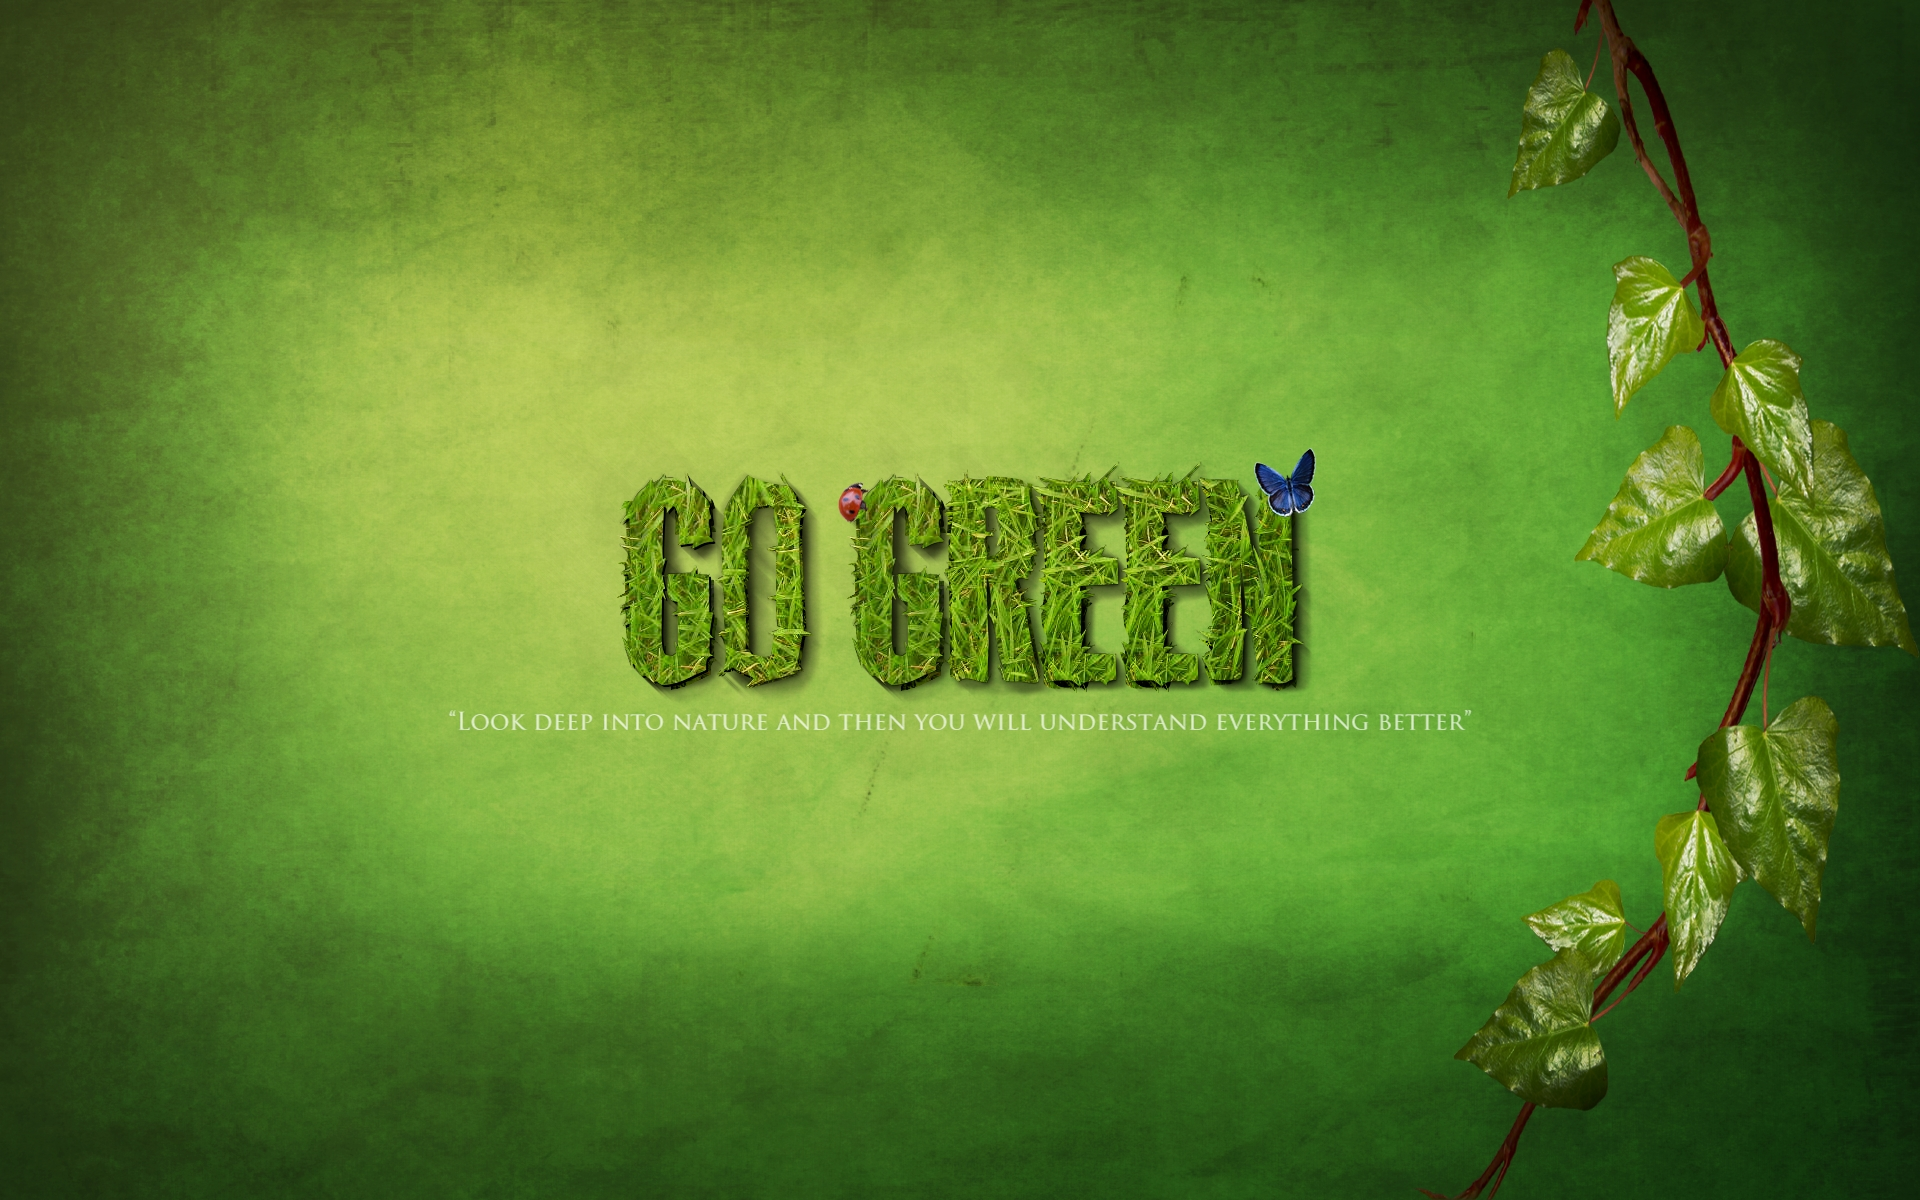 Earth Day Wallpapers and Background Images   stmednet 1920x1200